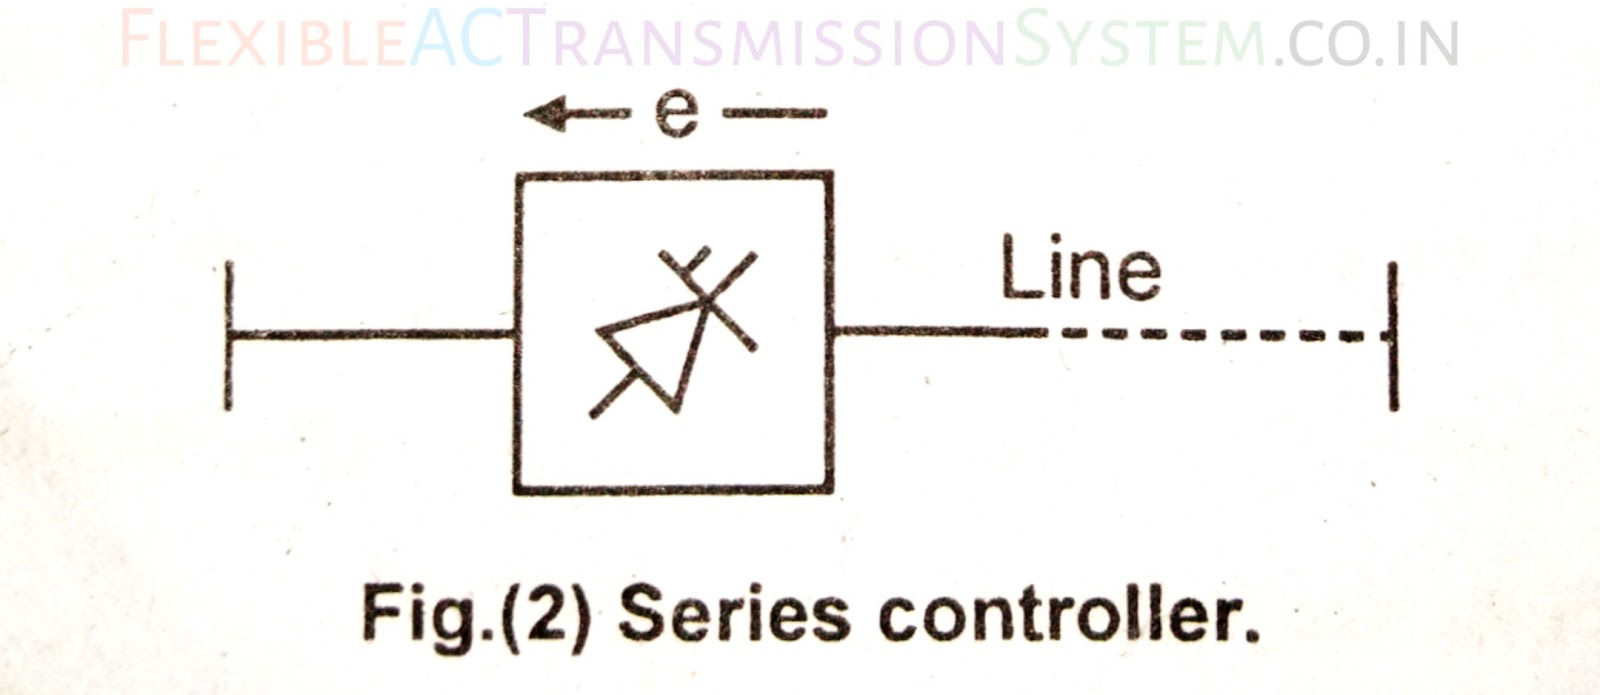 the series controller could be a variable impedance such as a capacitor reactor etc or a power electronics based variable source of main frequency  [ 1600 x 695 Pixel ]